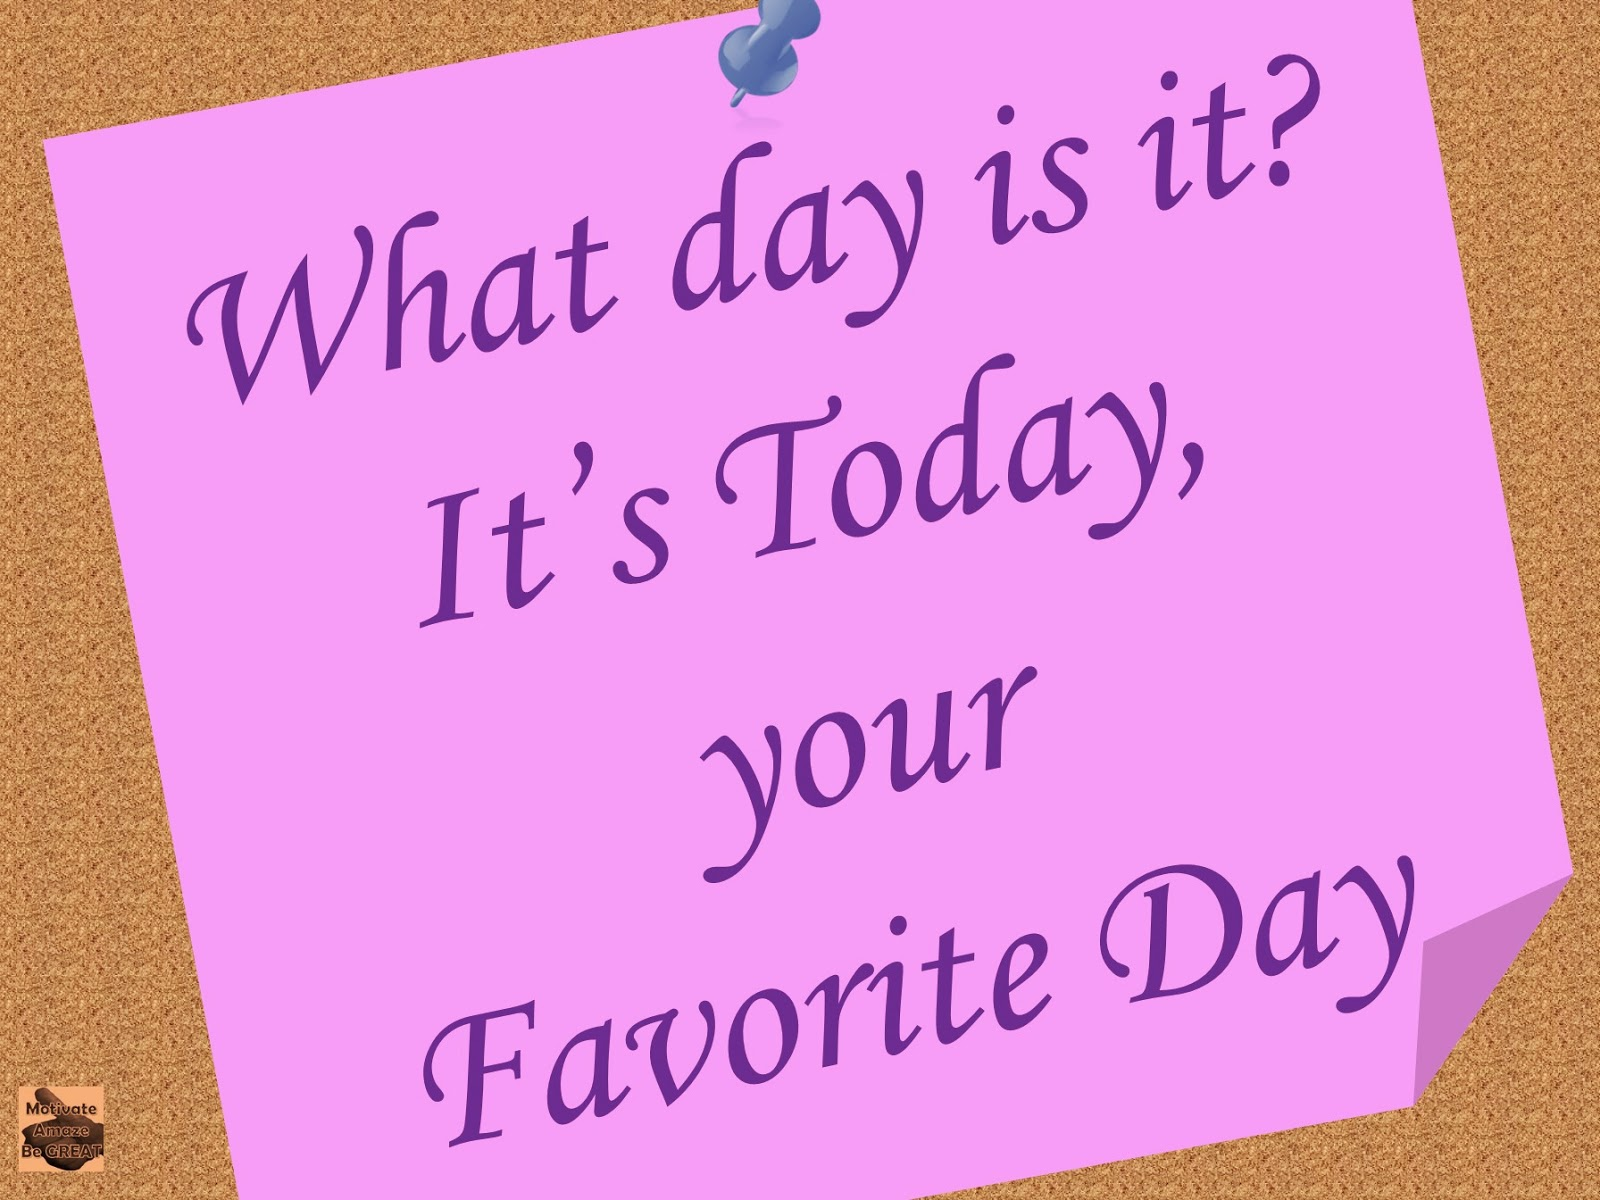 motivational post its you should remember everyday motivate motivational inspiration daily picture quotes success motivation today what day is